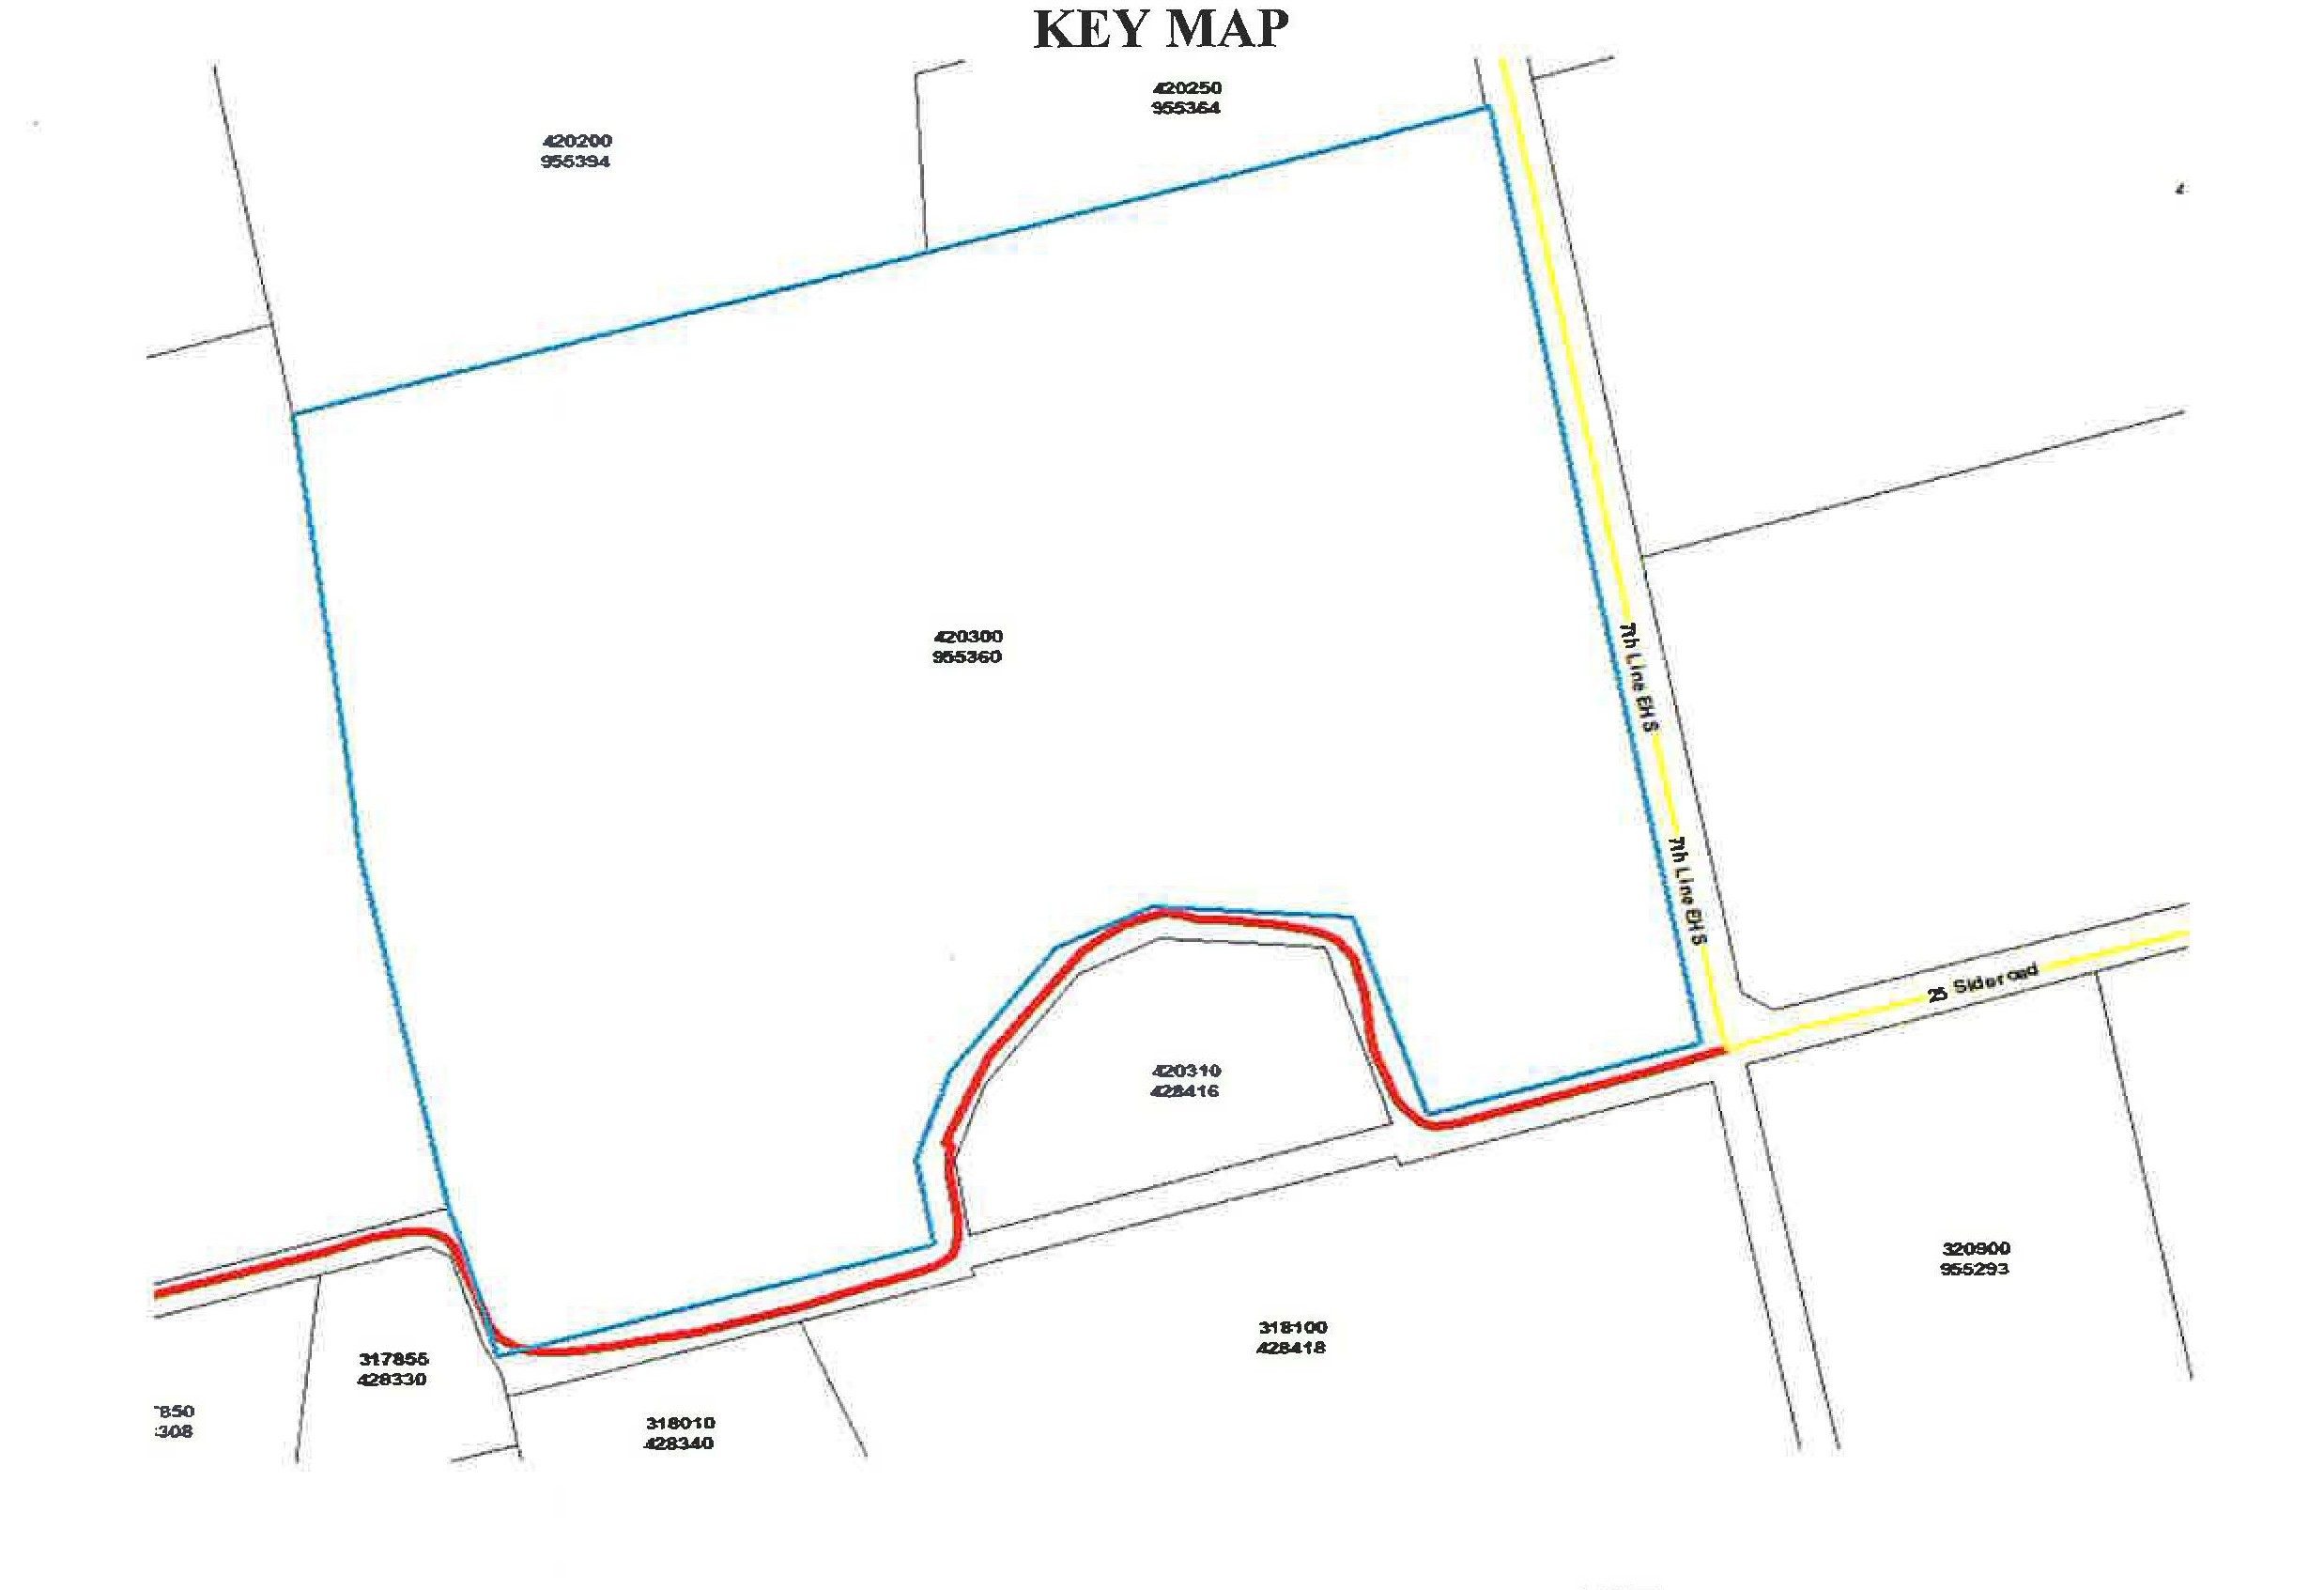 Key Map of Subject Land: Part of East Half of Lot 26 Concession 7 EHS 955360 7th Line EHS Mono